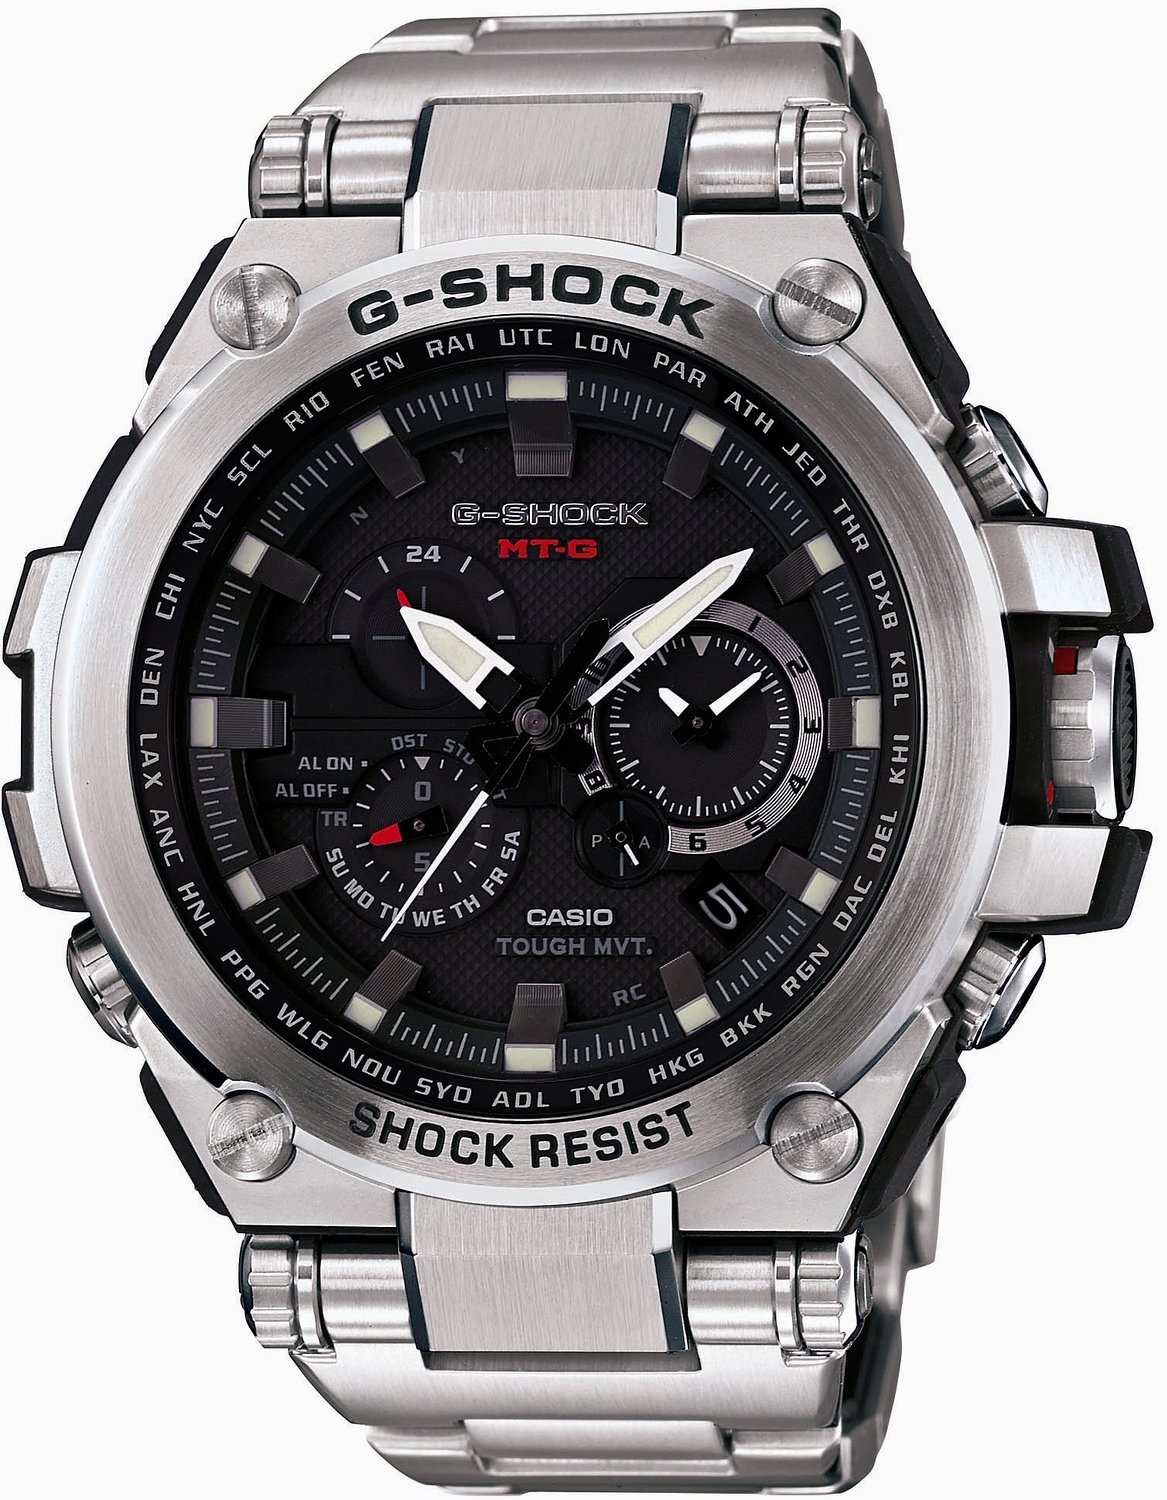 CASIO 卡西欧 G-Shock 男表 MTG-S1000D-1AJF MTG-S1000D-1A4JF